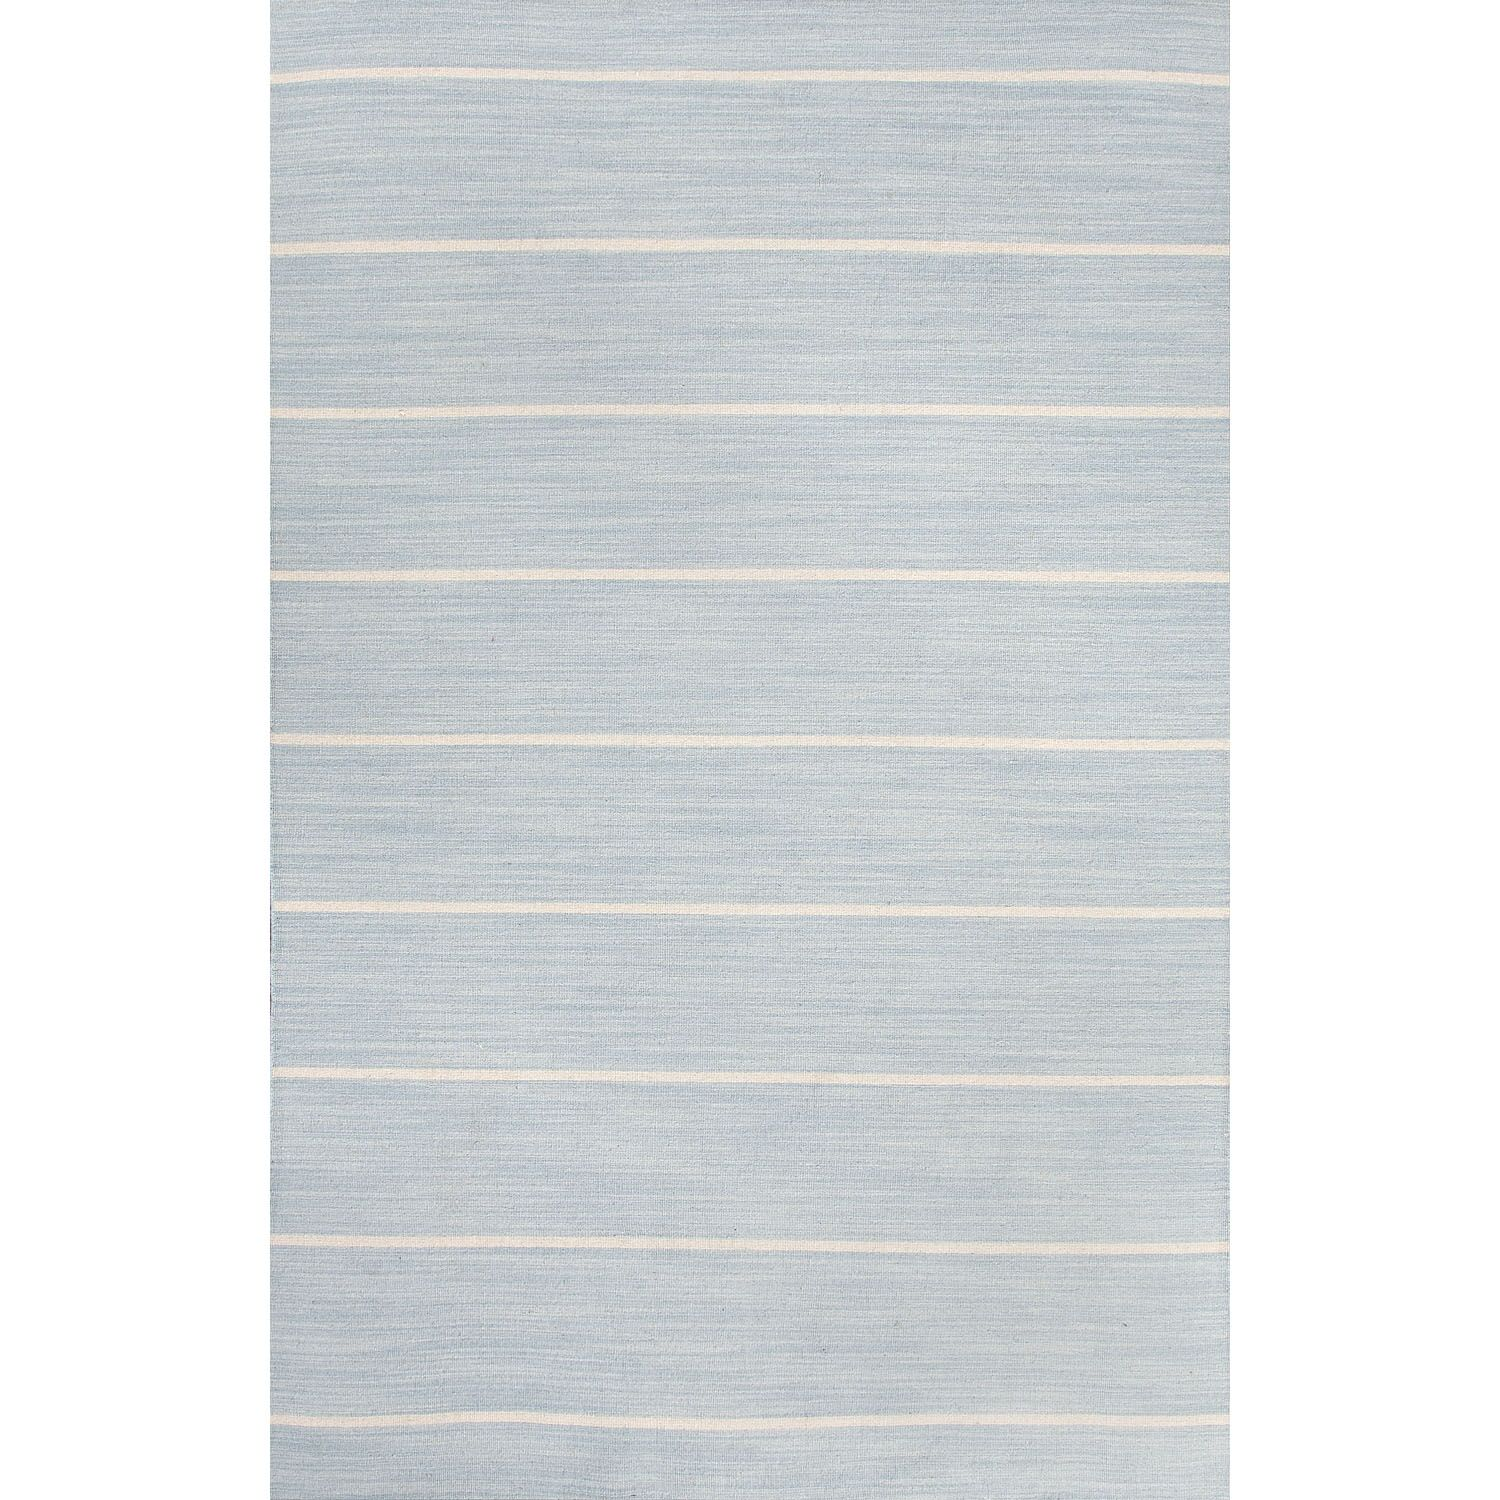 Templeton Blue/Ivory Area Rug Rug Size: Rectangle 8' x 10'